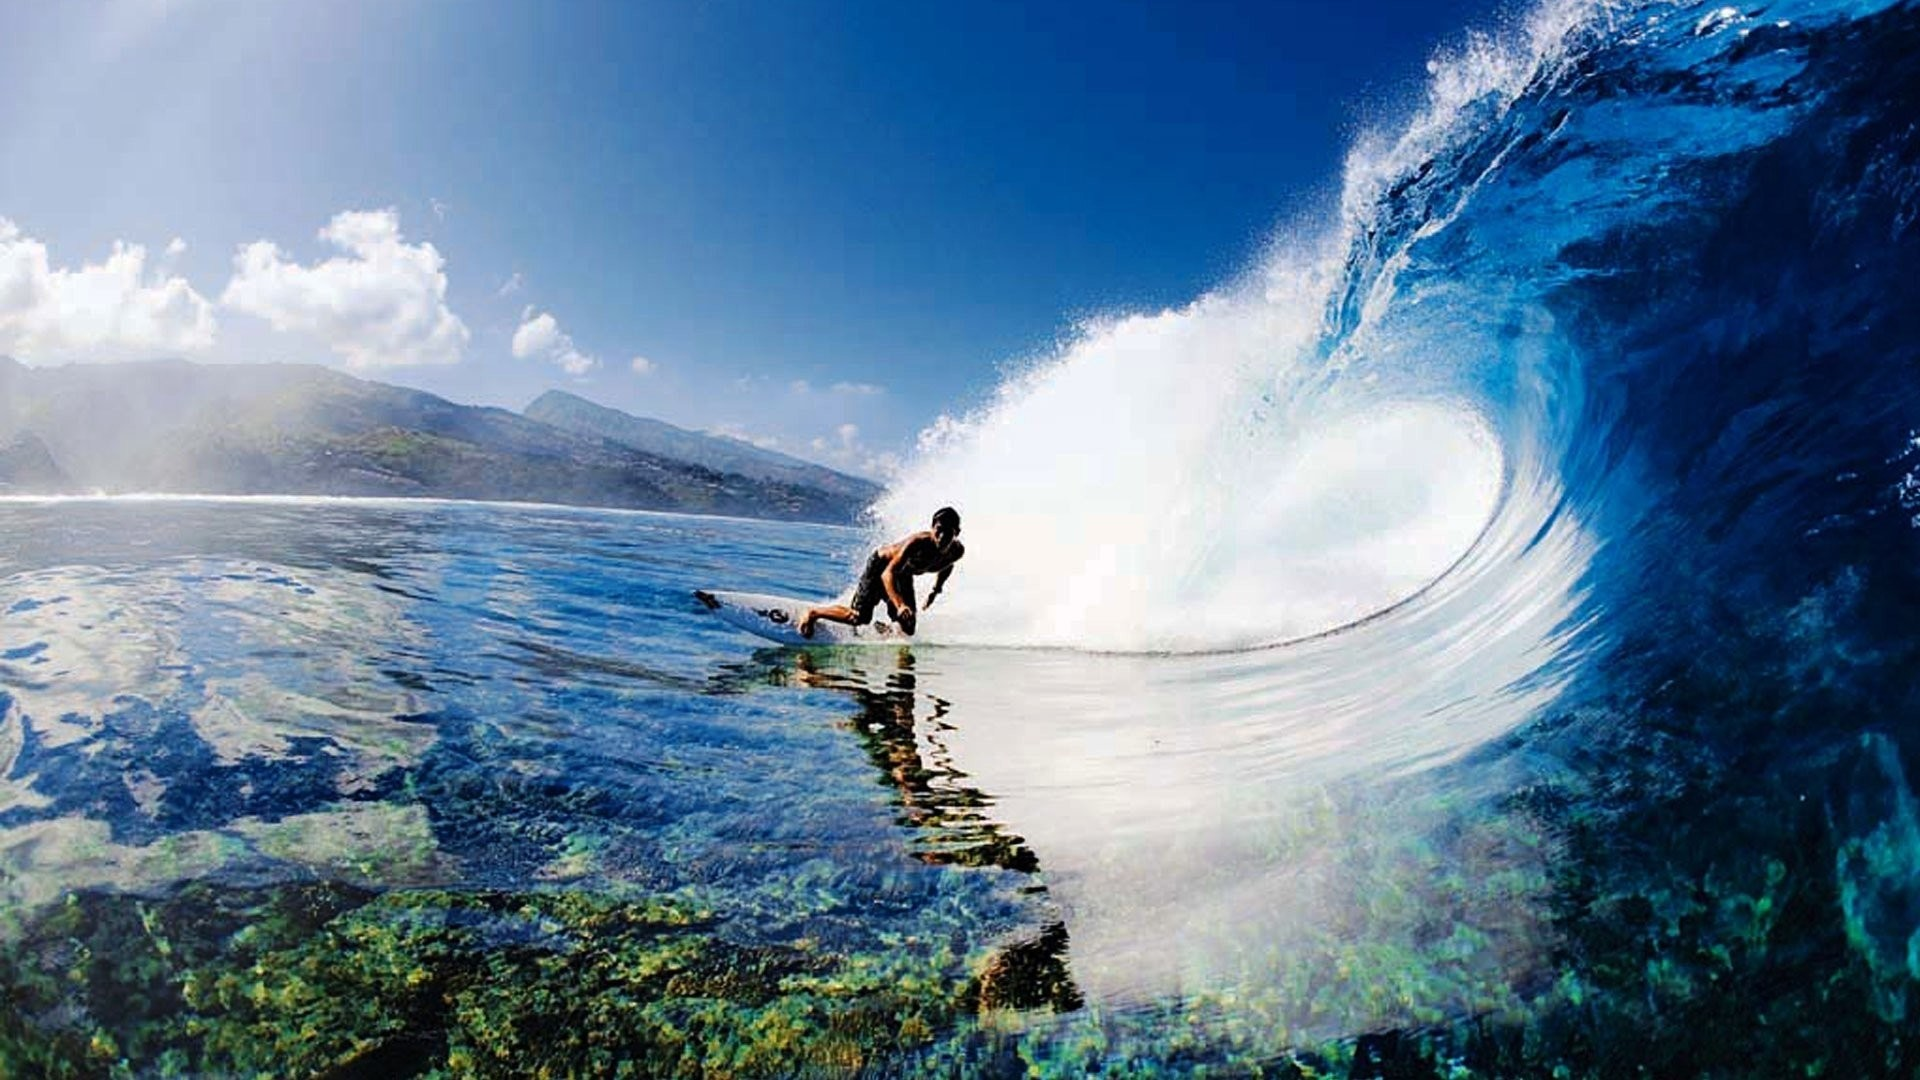 Surfing Wallpapers Wallpapers   All Superior Surfing Wallpapers 1920x1080